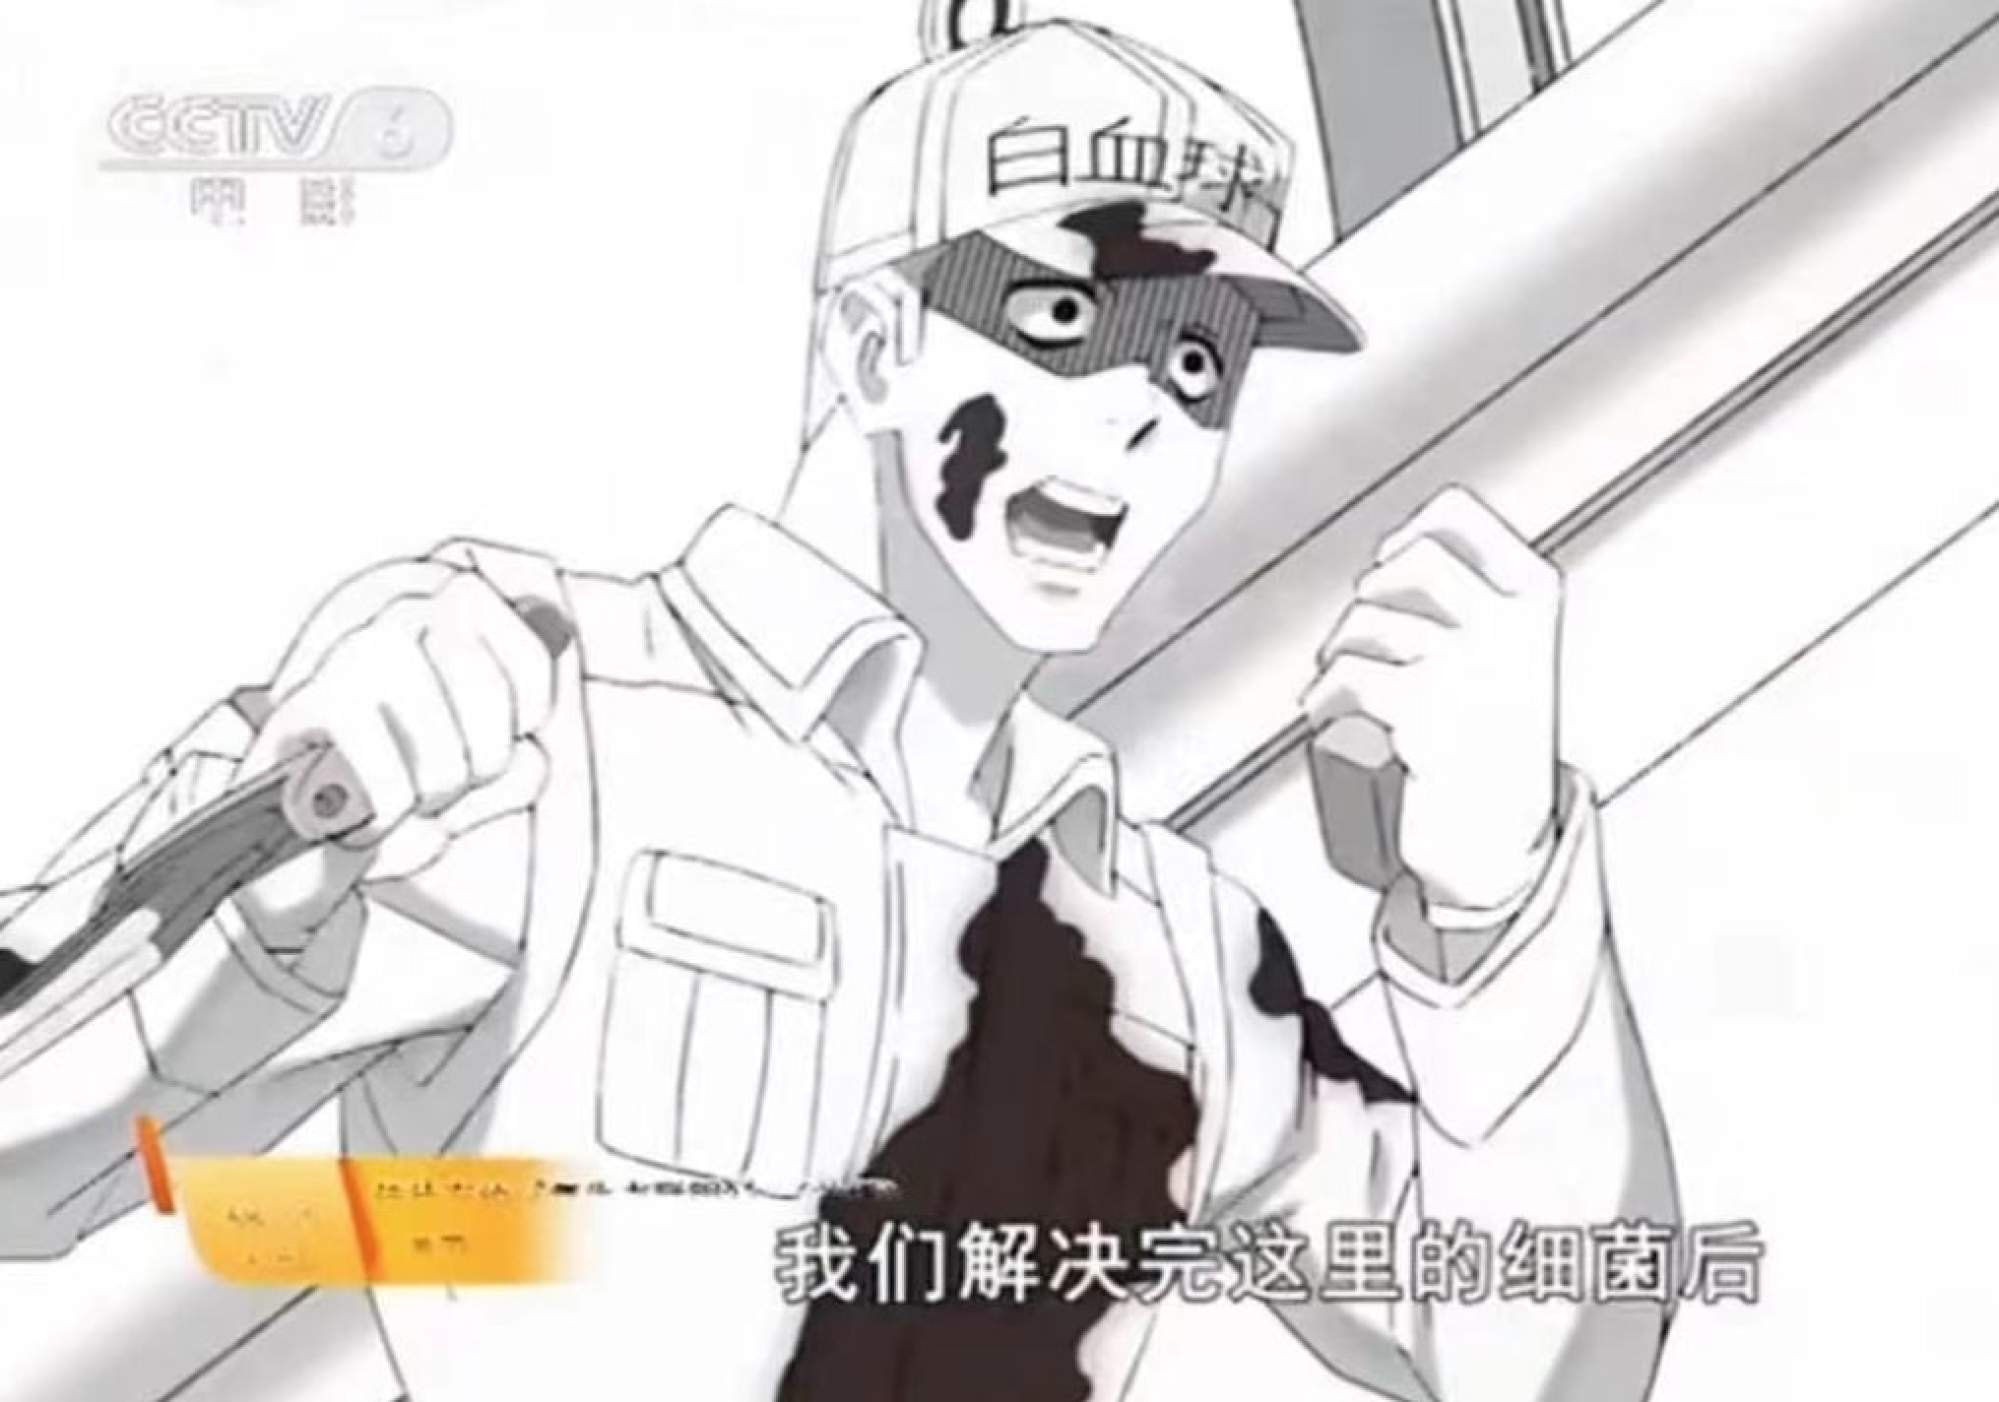 China's state media praised for return of Japanese anime Cells at Work! but some unhappy series edited to be less violent